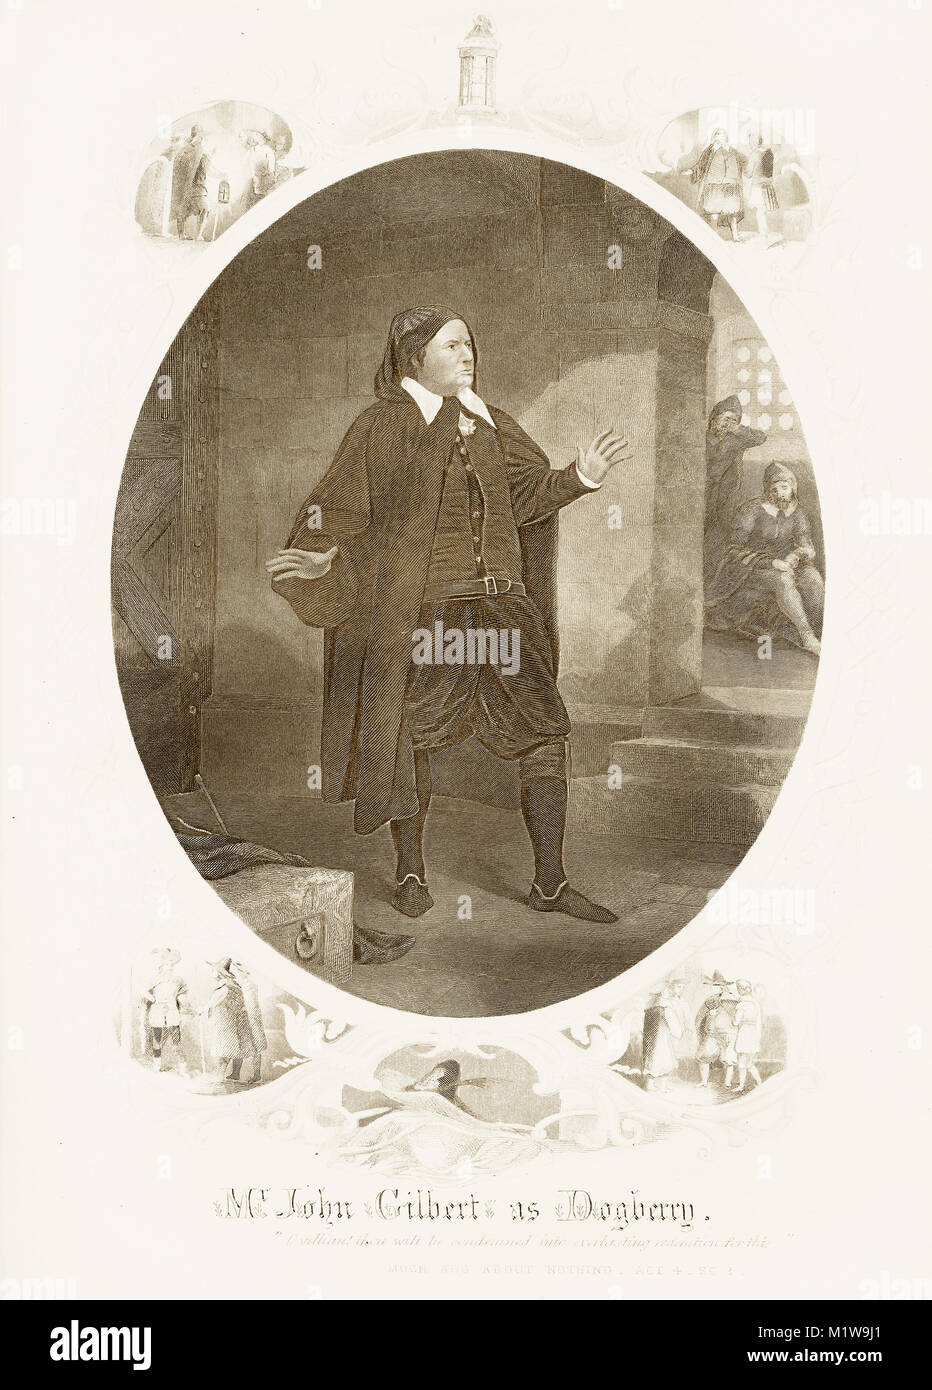 Engraving of the Shakespearean character Dogberry, acted by an American, John Gilbert in Much ado About Nothing. - Stock Image